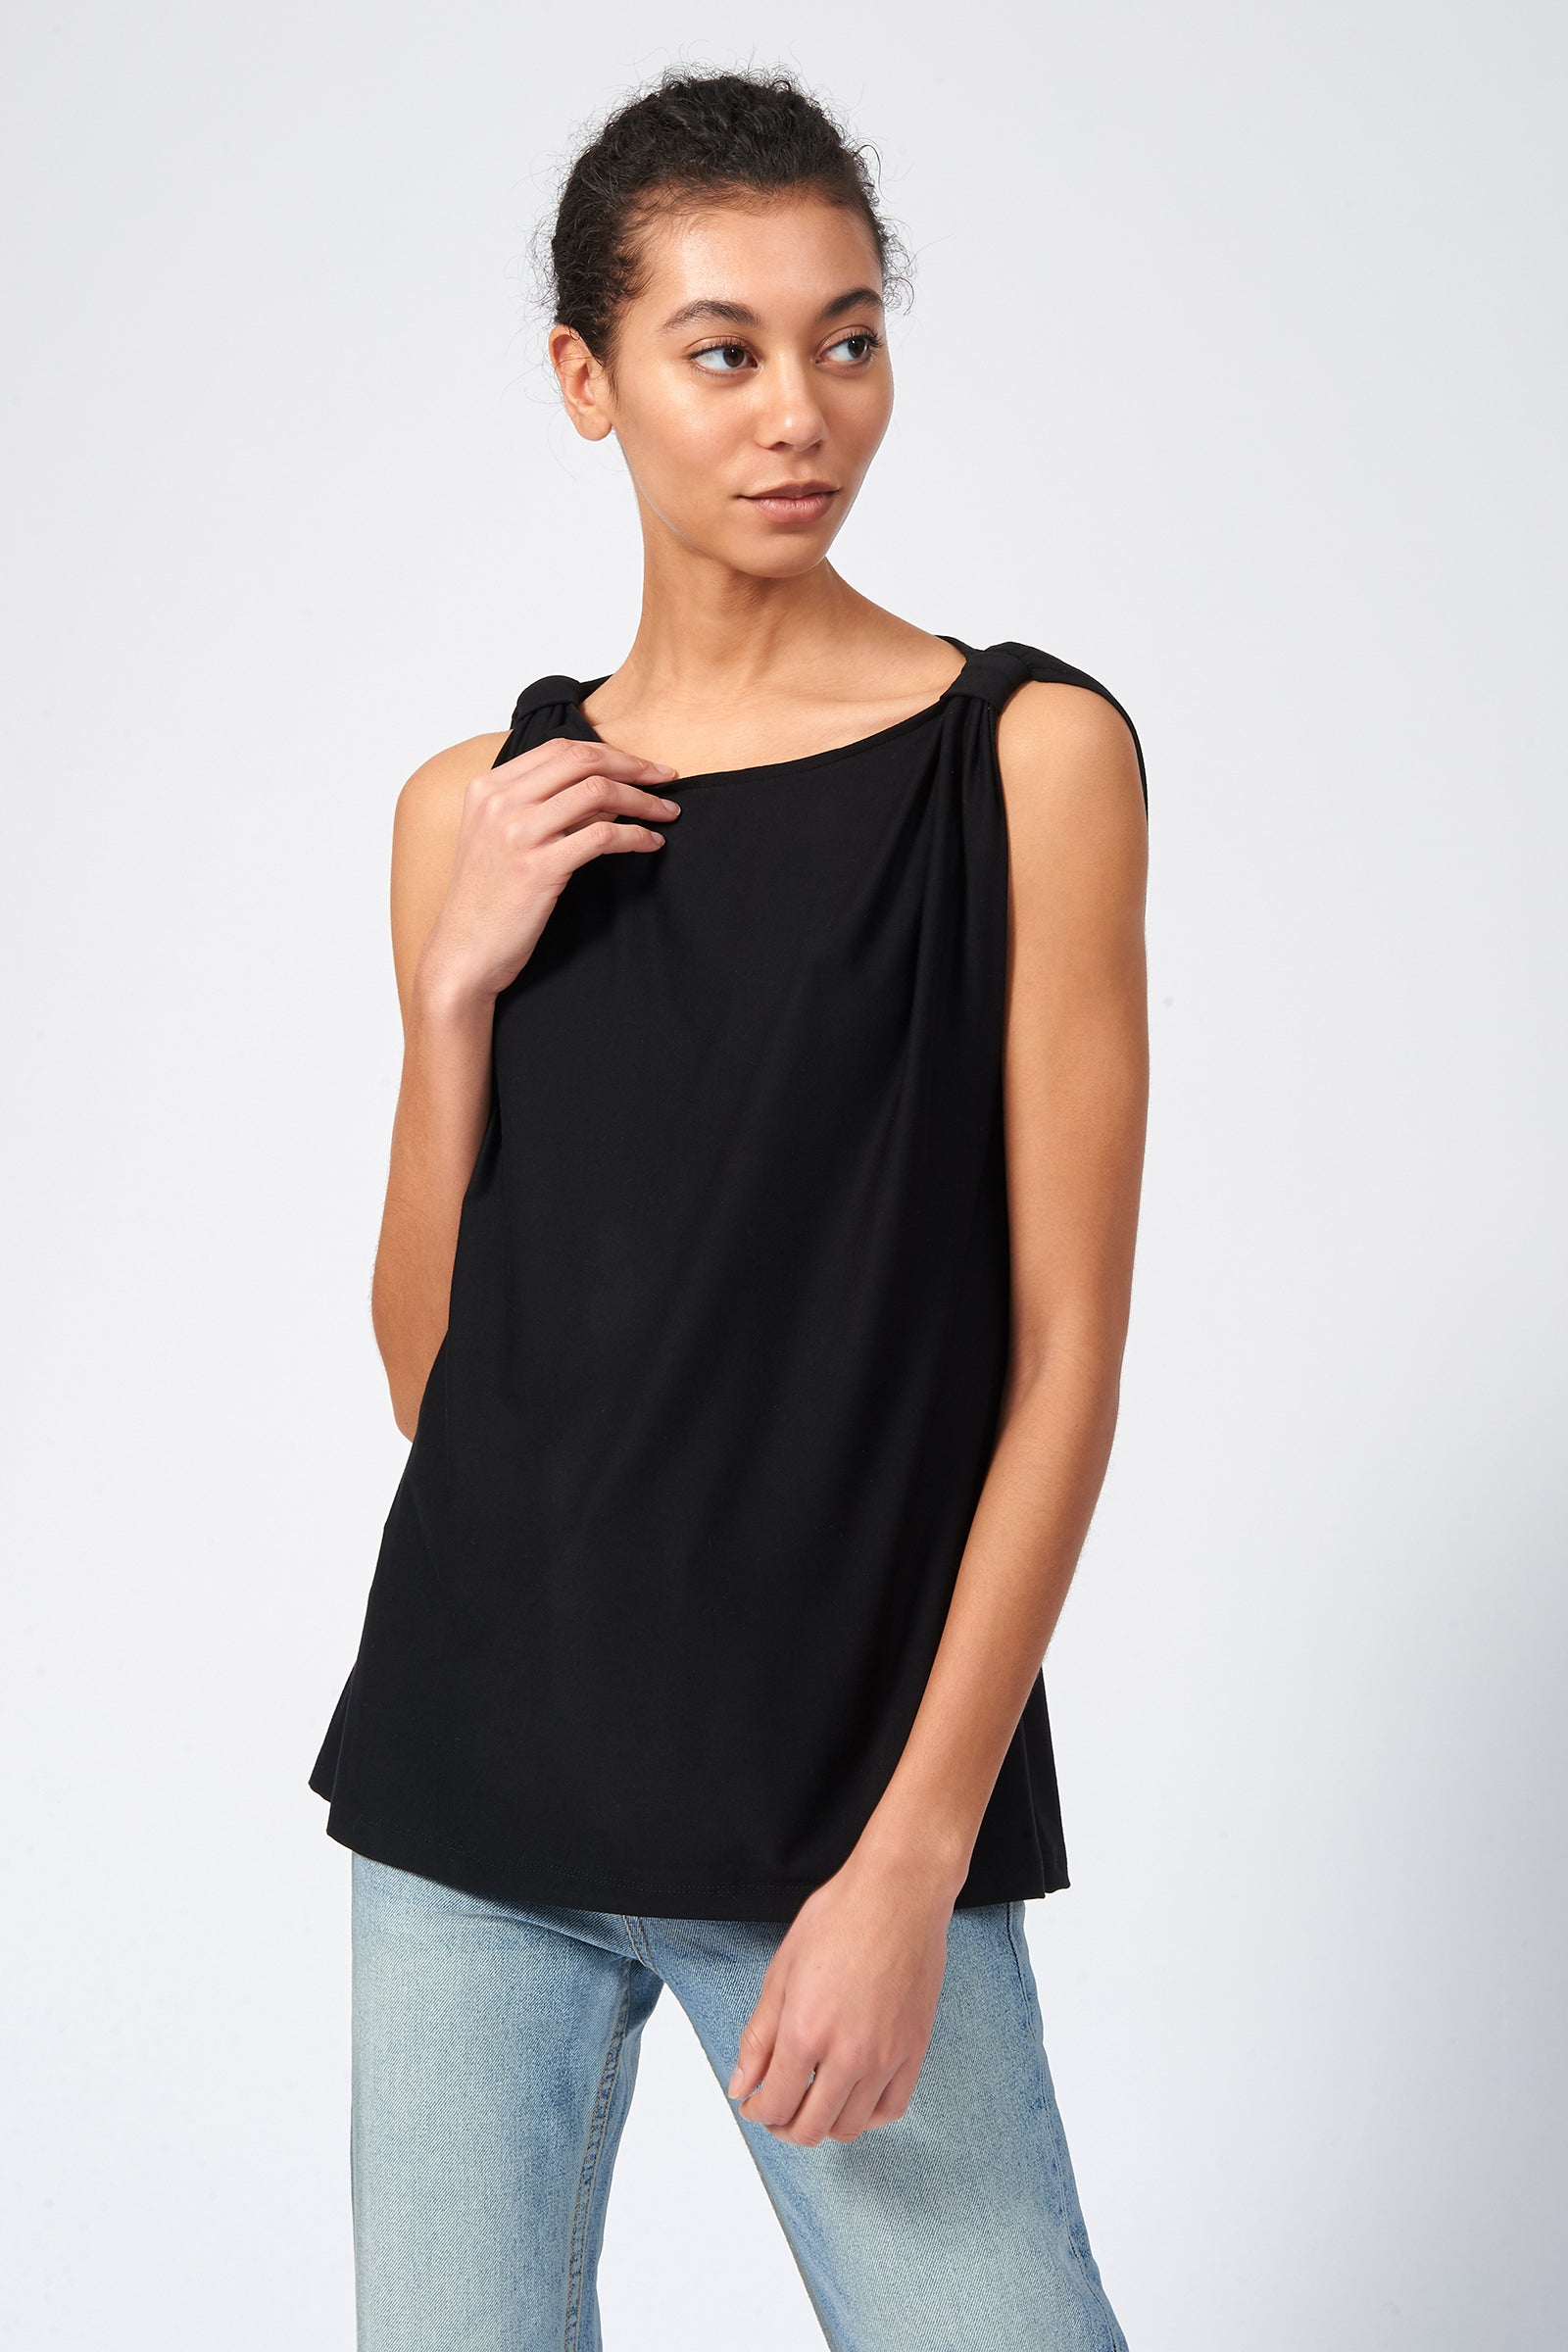 Kal Rieman Knot Shoulder Tee in Black on Model Front View